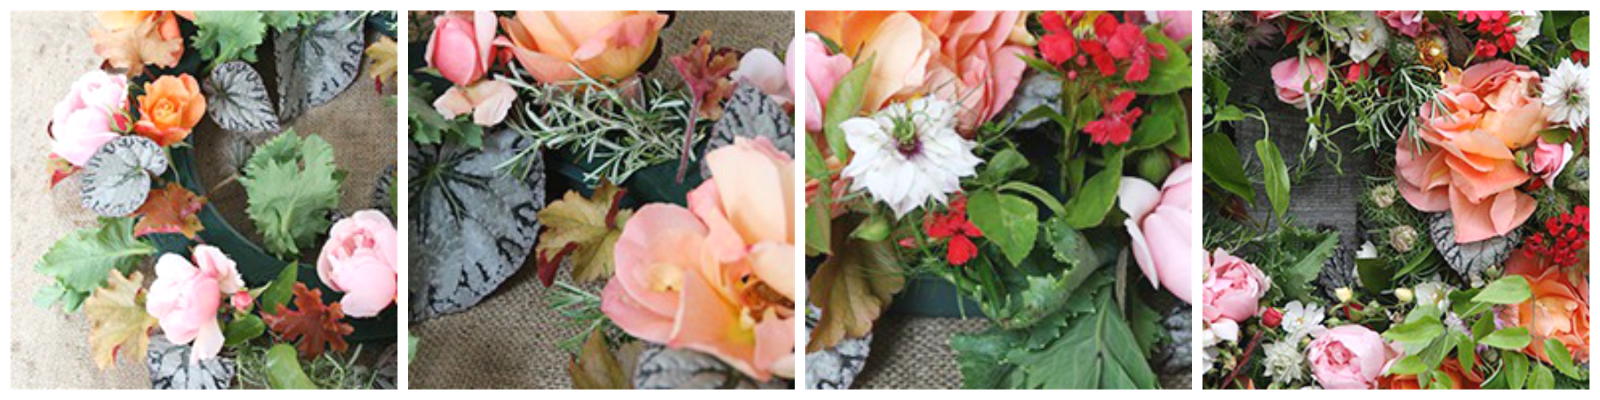 Ioanna's Notebook - DIY Floral Wreath - Step 3